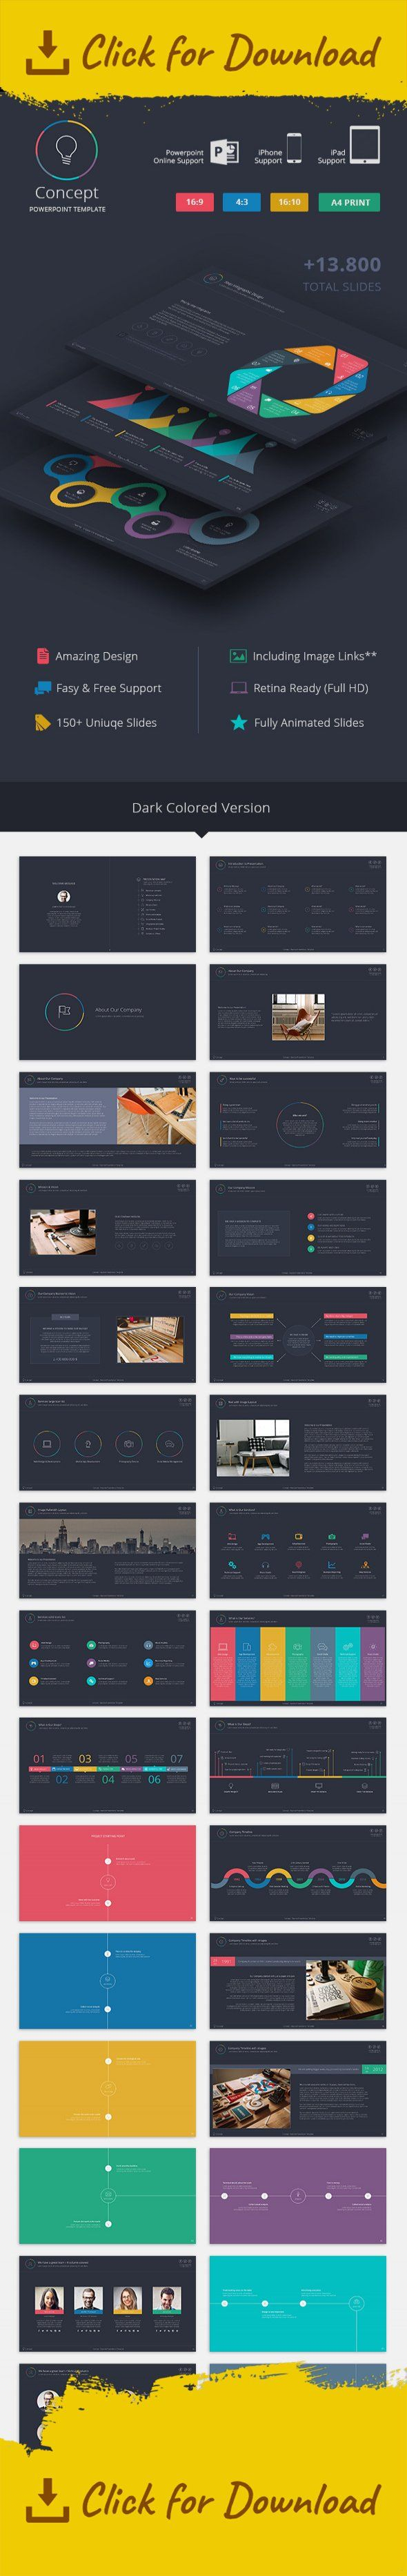 analysis, business powerpoint template, business powerpoint theme, Business Presentation Template, colorful, infographic, iPad presentation, iPhone presentation, online powerpoint presentation, portfolio, powerpoint theme Compatible versions   Powerpoint PPT   Powerpoint PPTX    Compatible Platforms  iPhone iOS iPad iOS Powerpoint Online(Web) Windows(Powerpoint PPT and PPTX)  We created versions especially for iPad, iPhone and Powerpoint Online. You can easily use Concept with your…